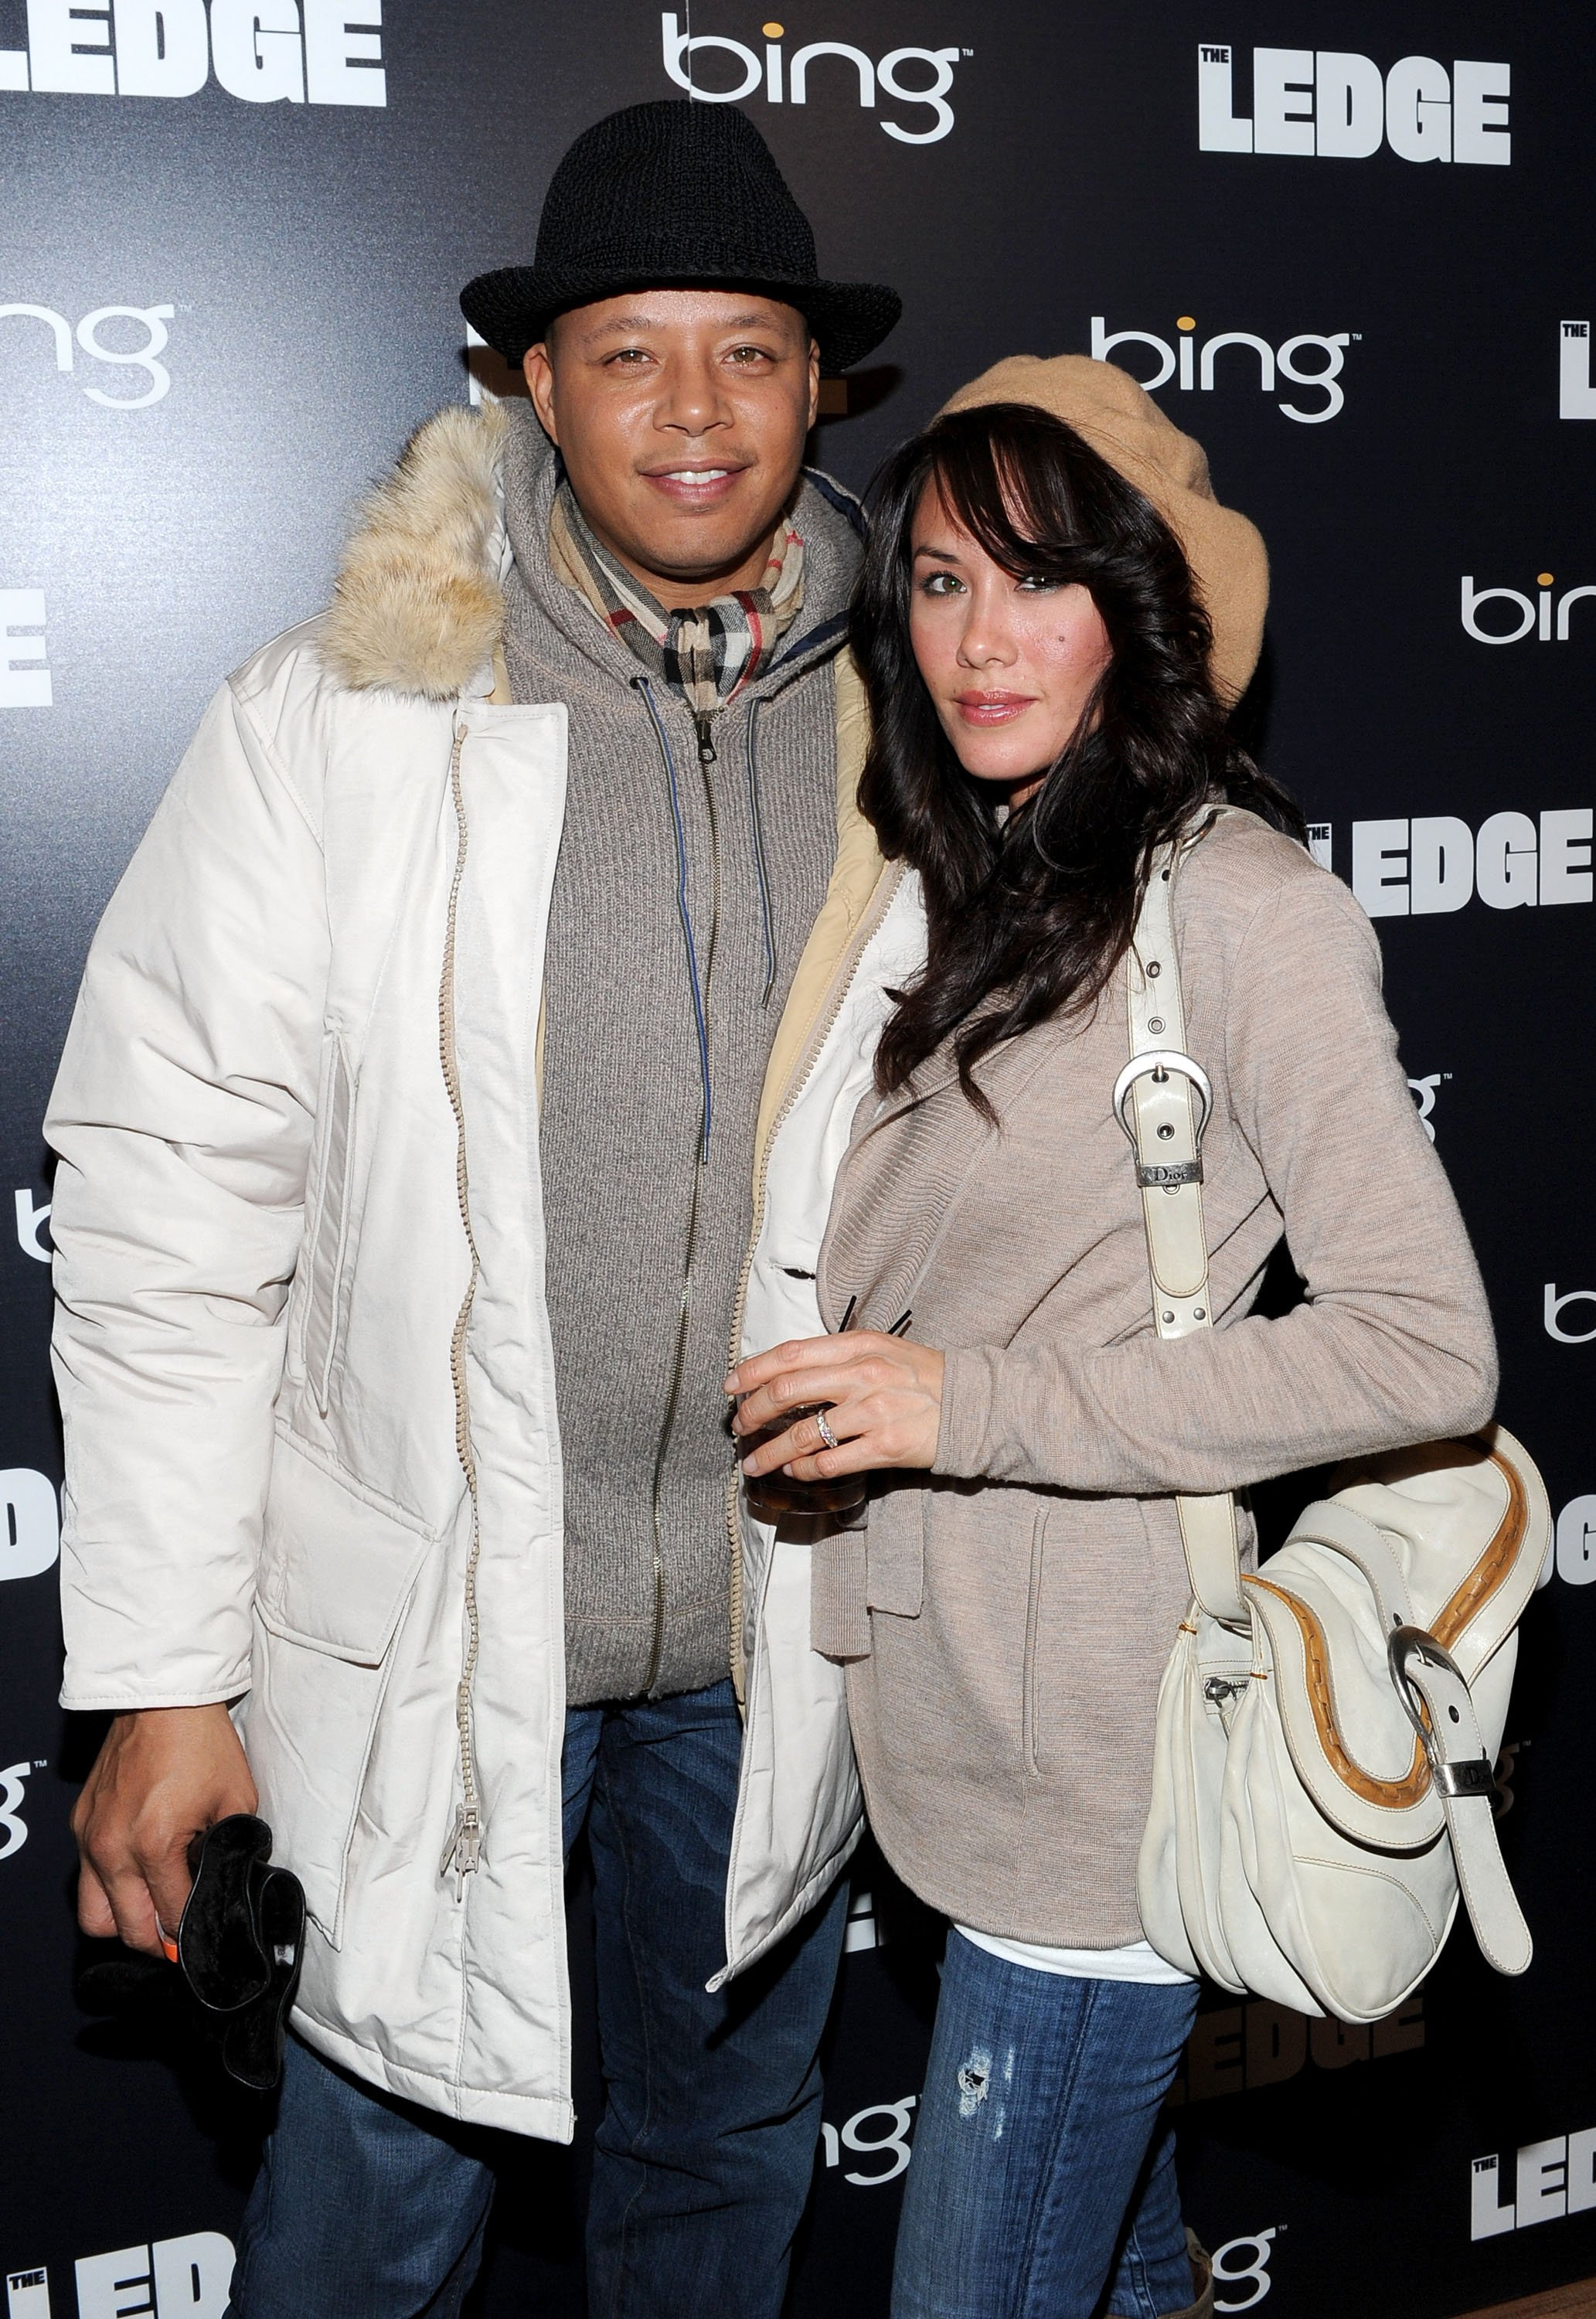 Terrence Howard & Michelle Ghent attend the Bing Bar on Jan. 21, 2011 in Park City, Utah | Photo: Getty Images